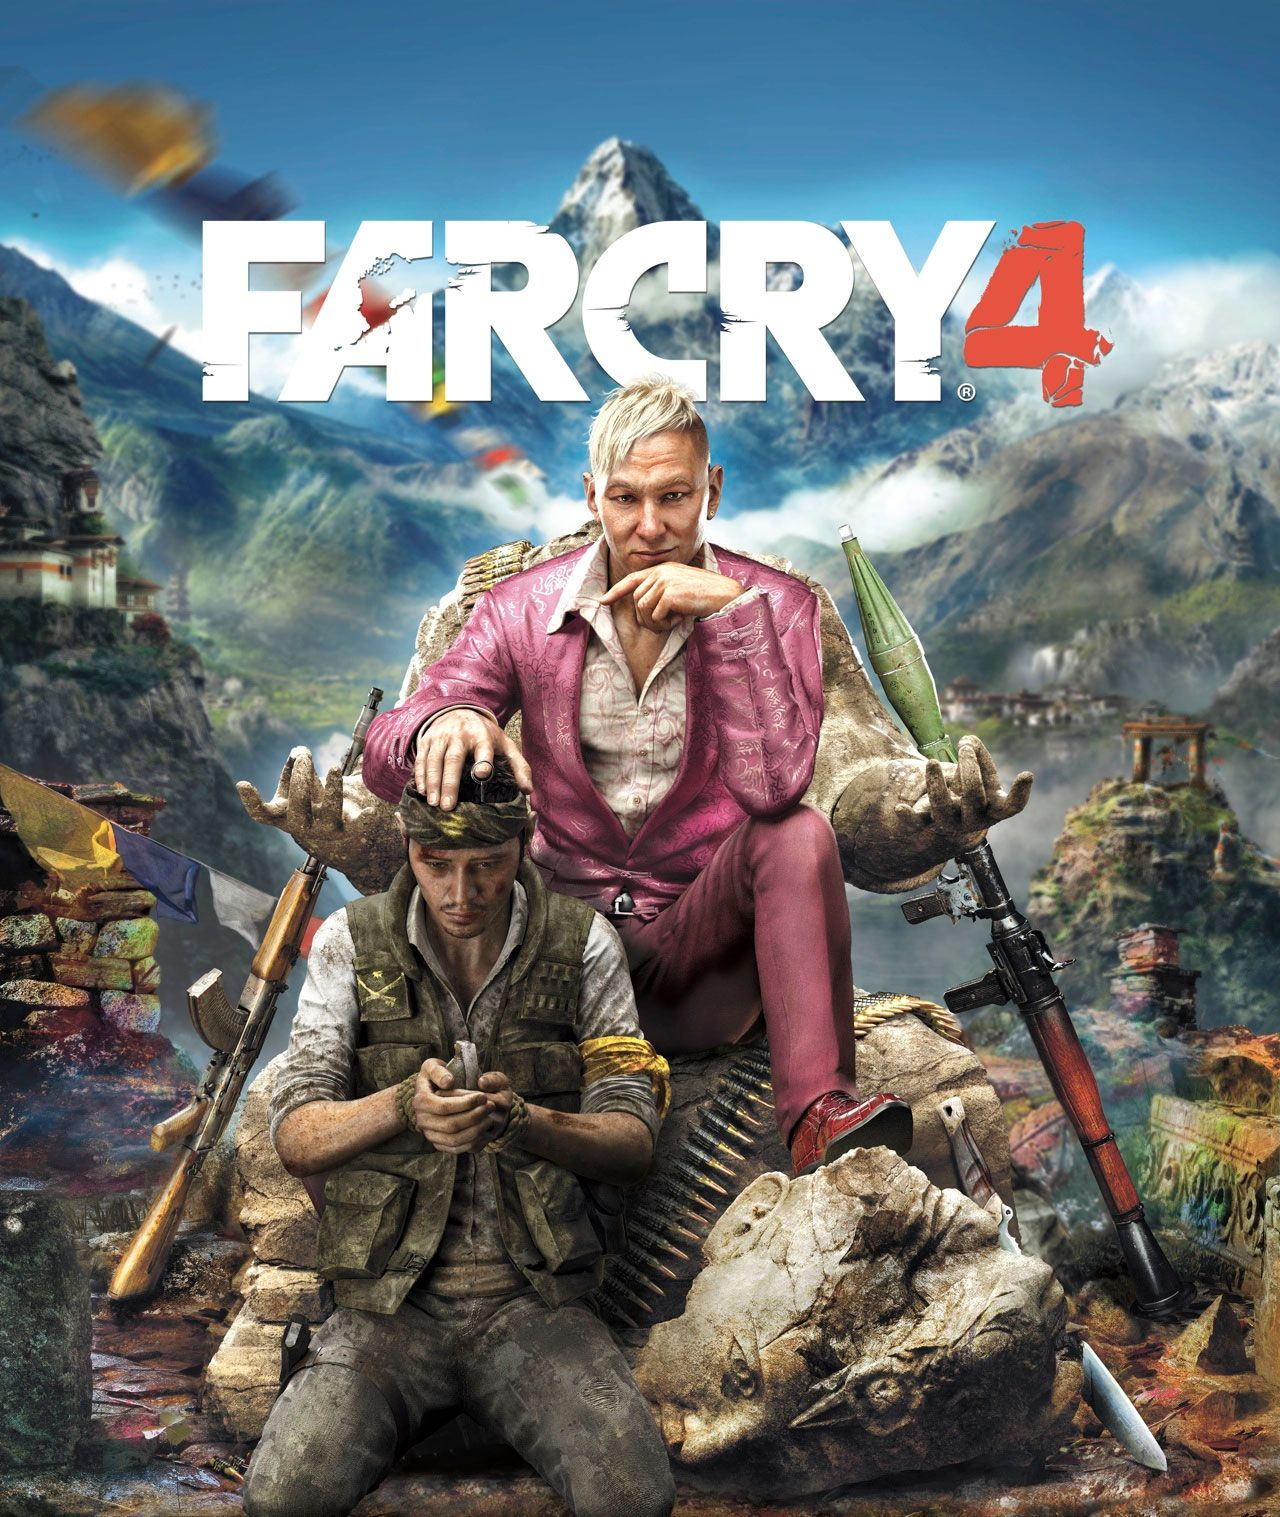 Game Cover Farcry 4 Far Cry 4 Xbox One Games Ps4 Or Xbox One